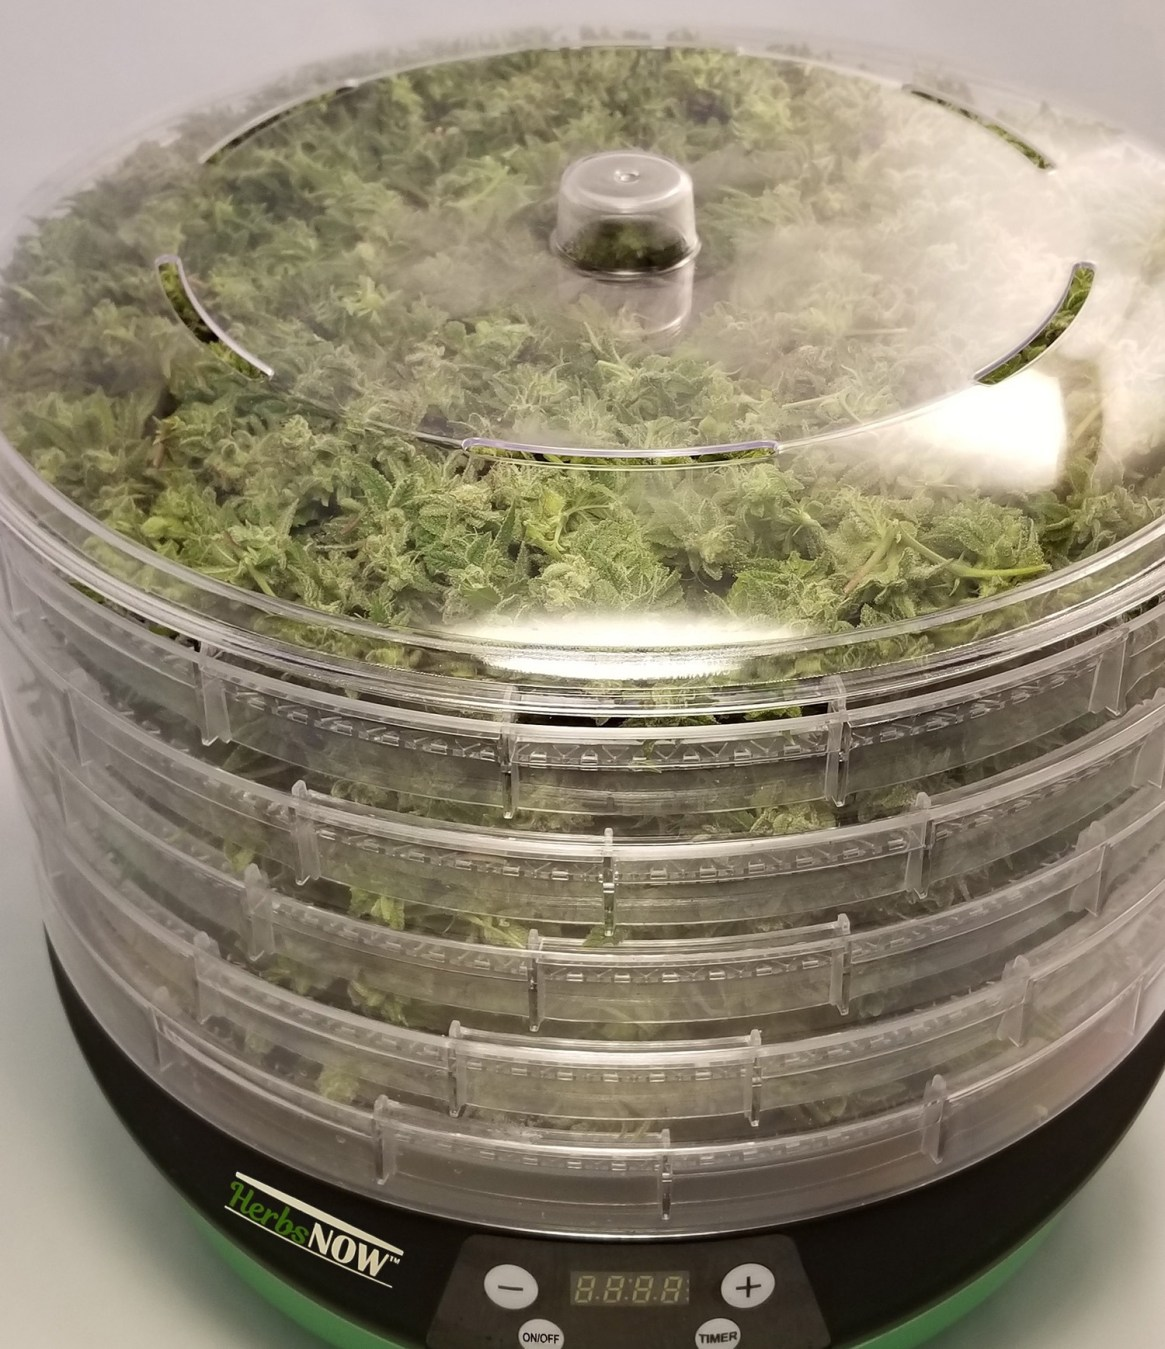 HerbsNOW is the solution for how to dry cannabis